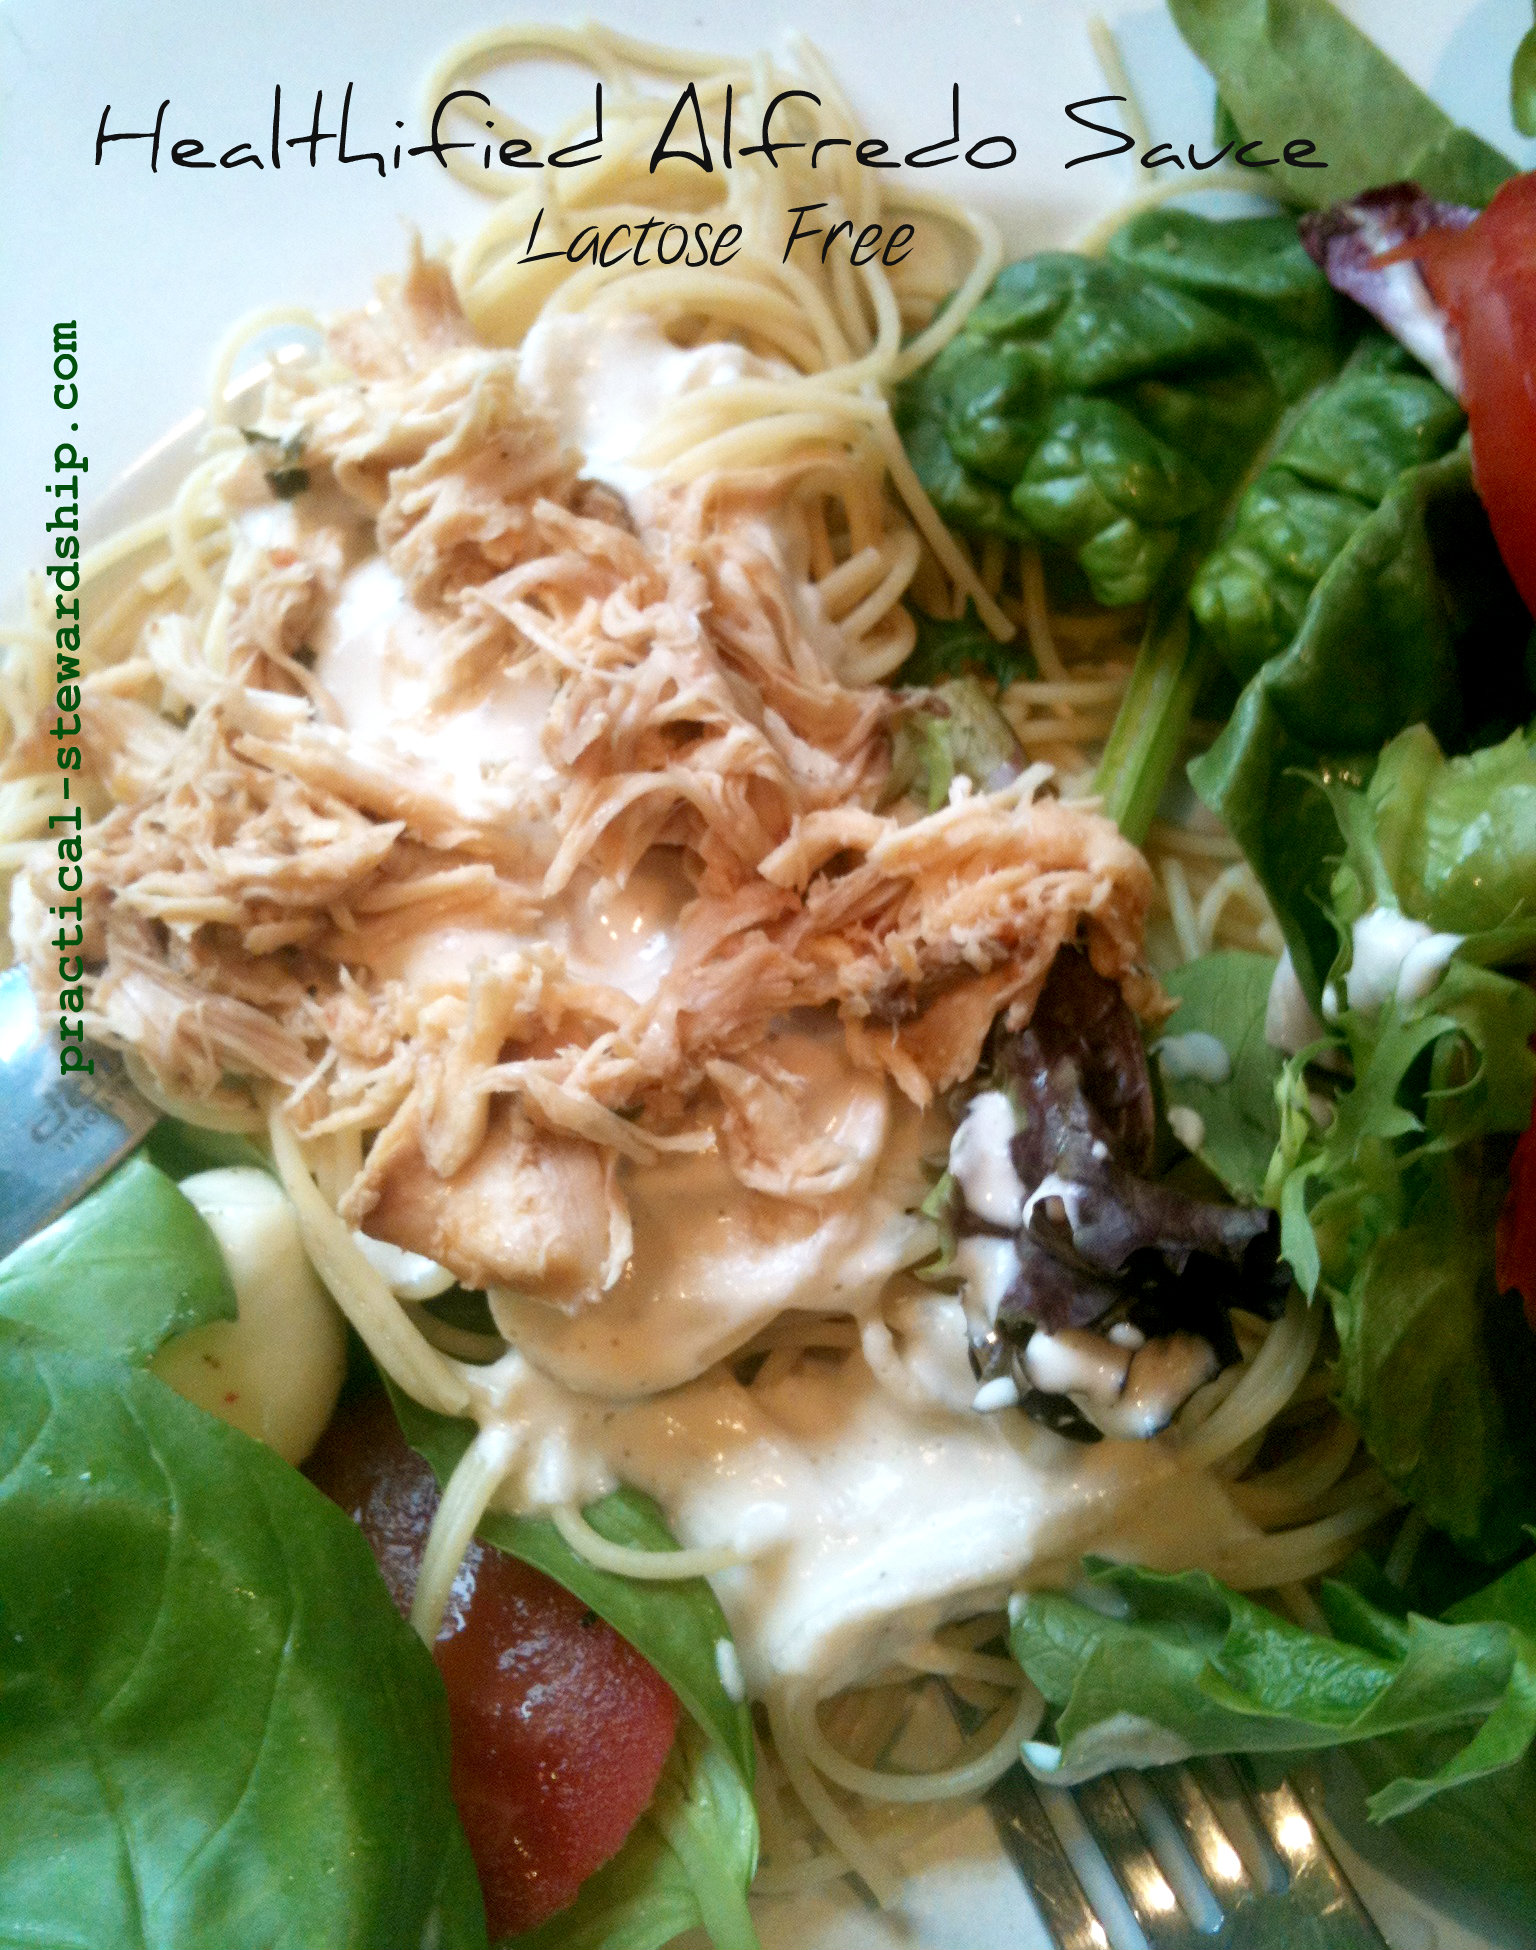 Healthified Alfredo Sauce Recipe